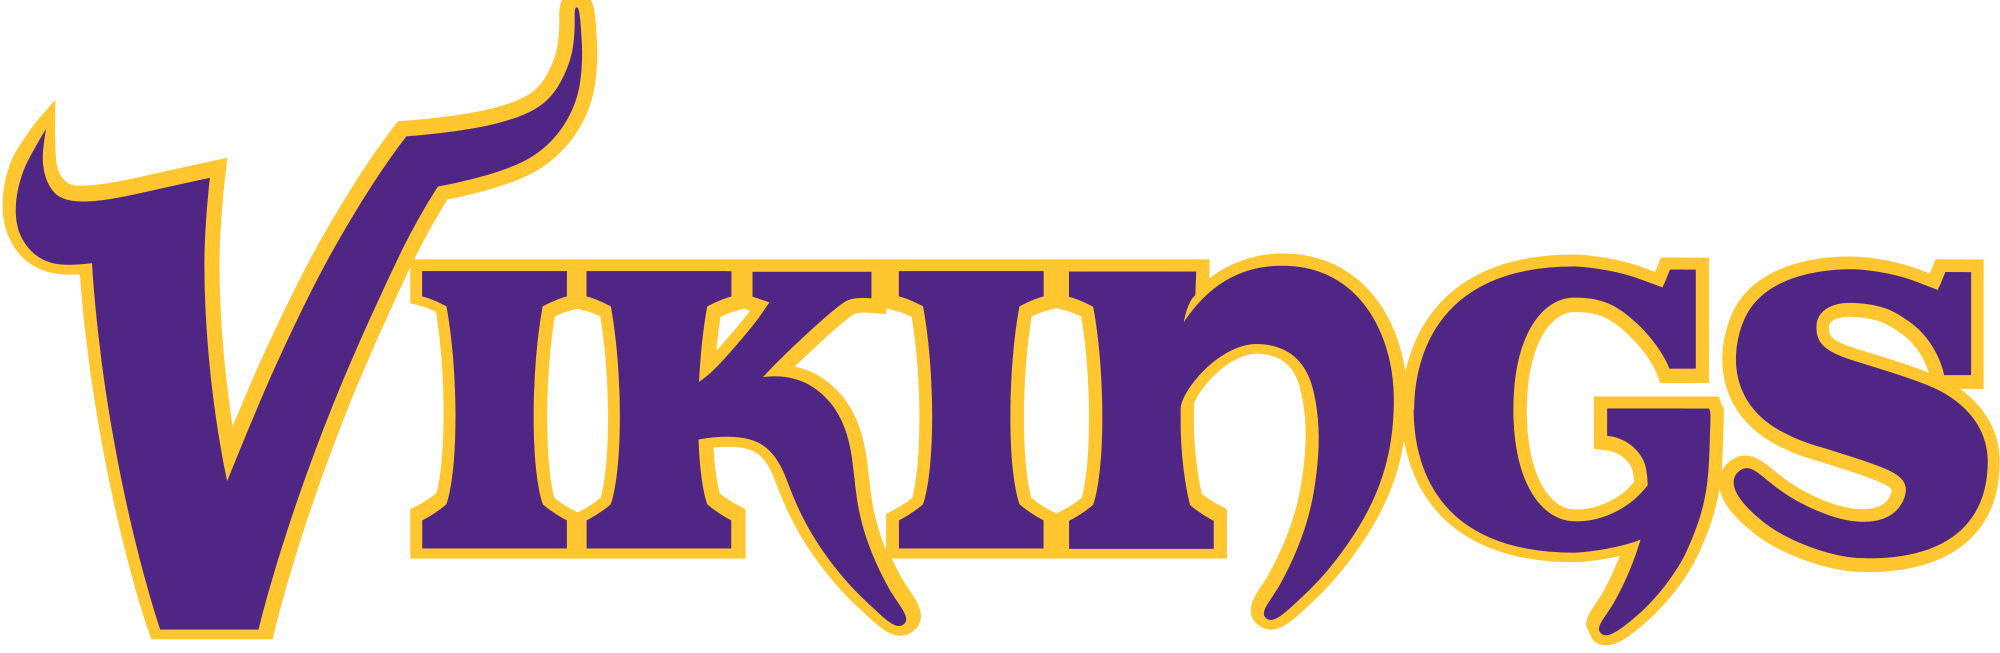 vikings svg official